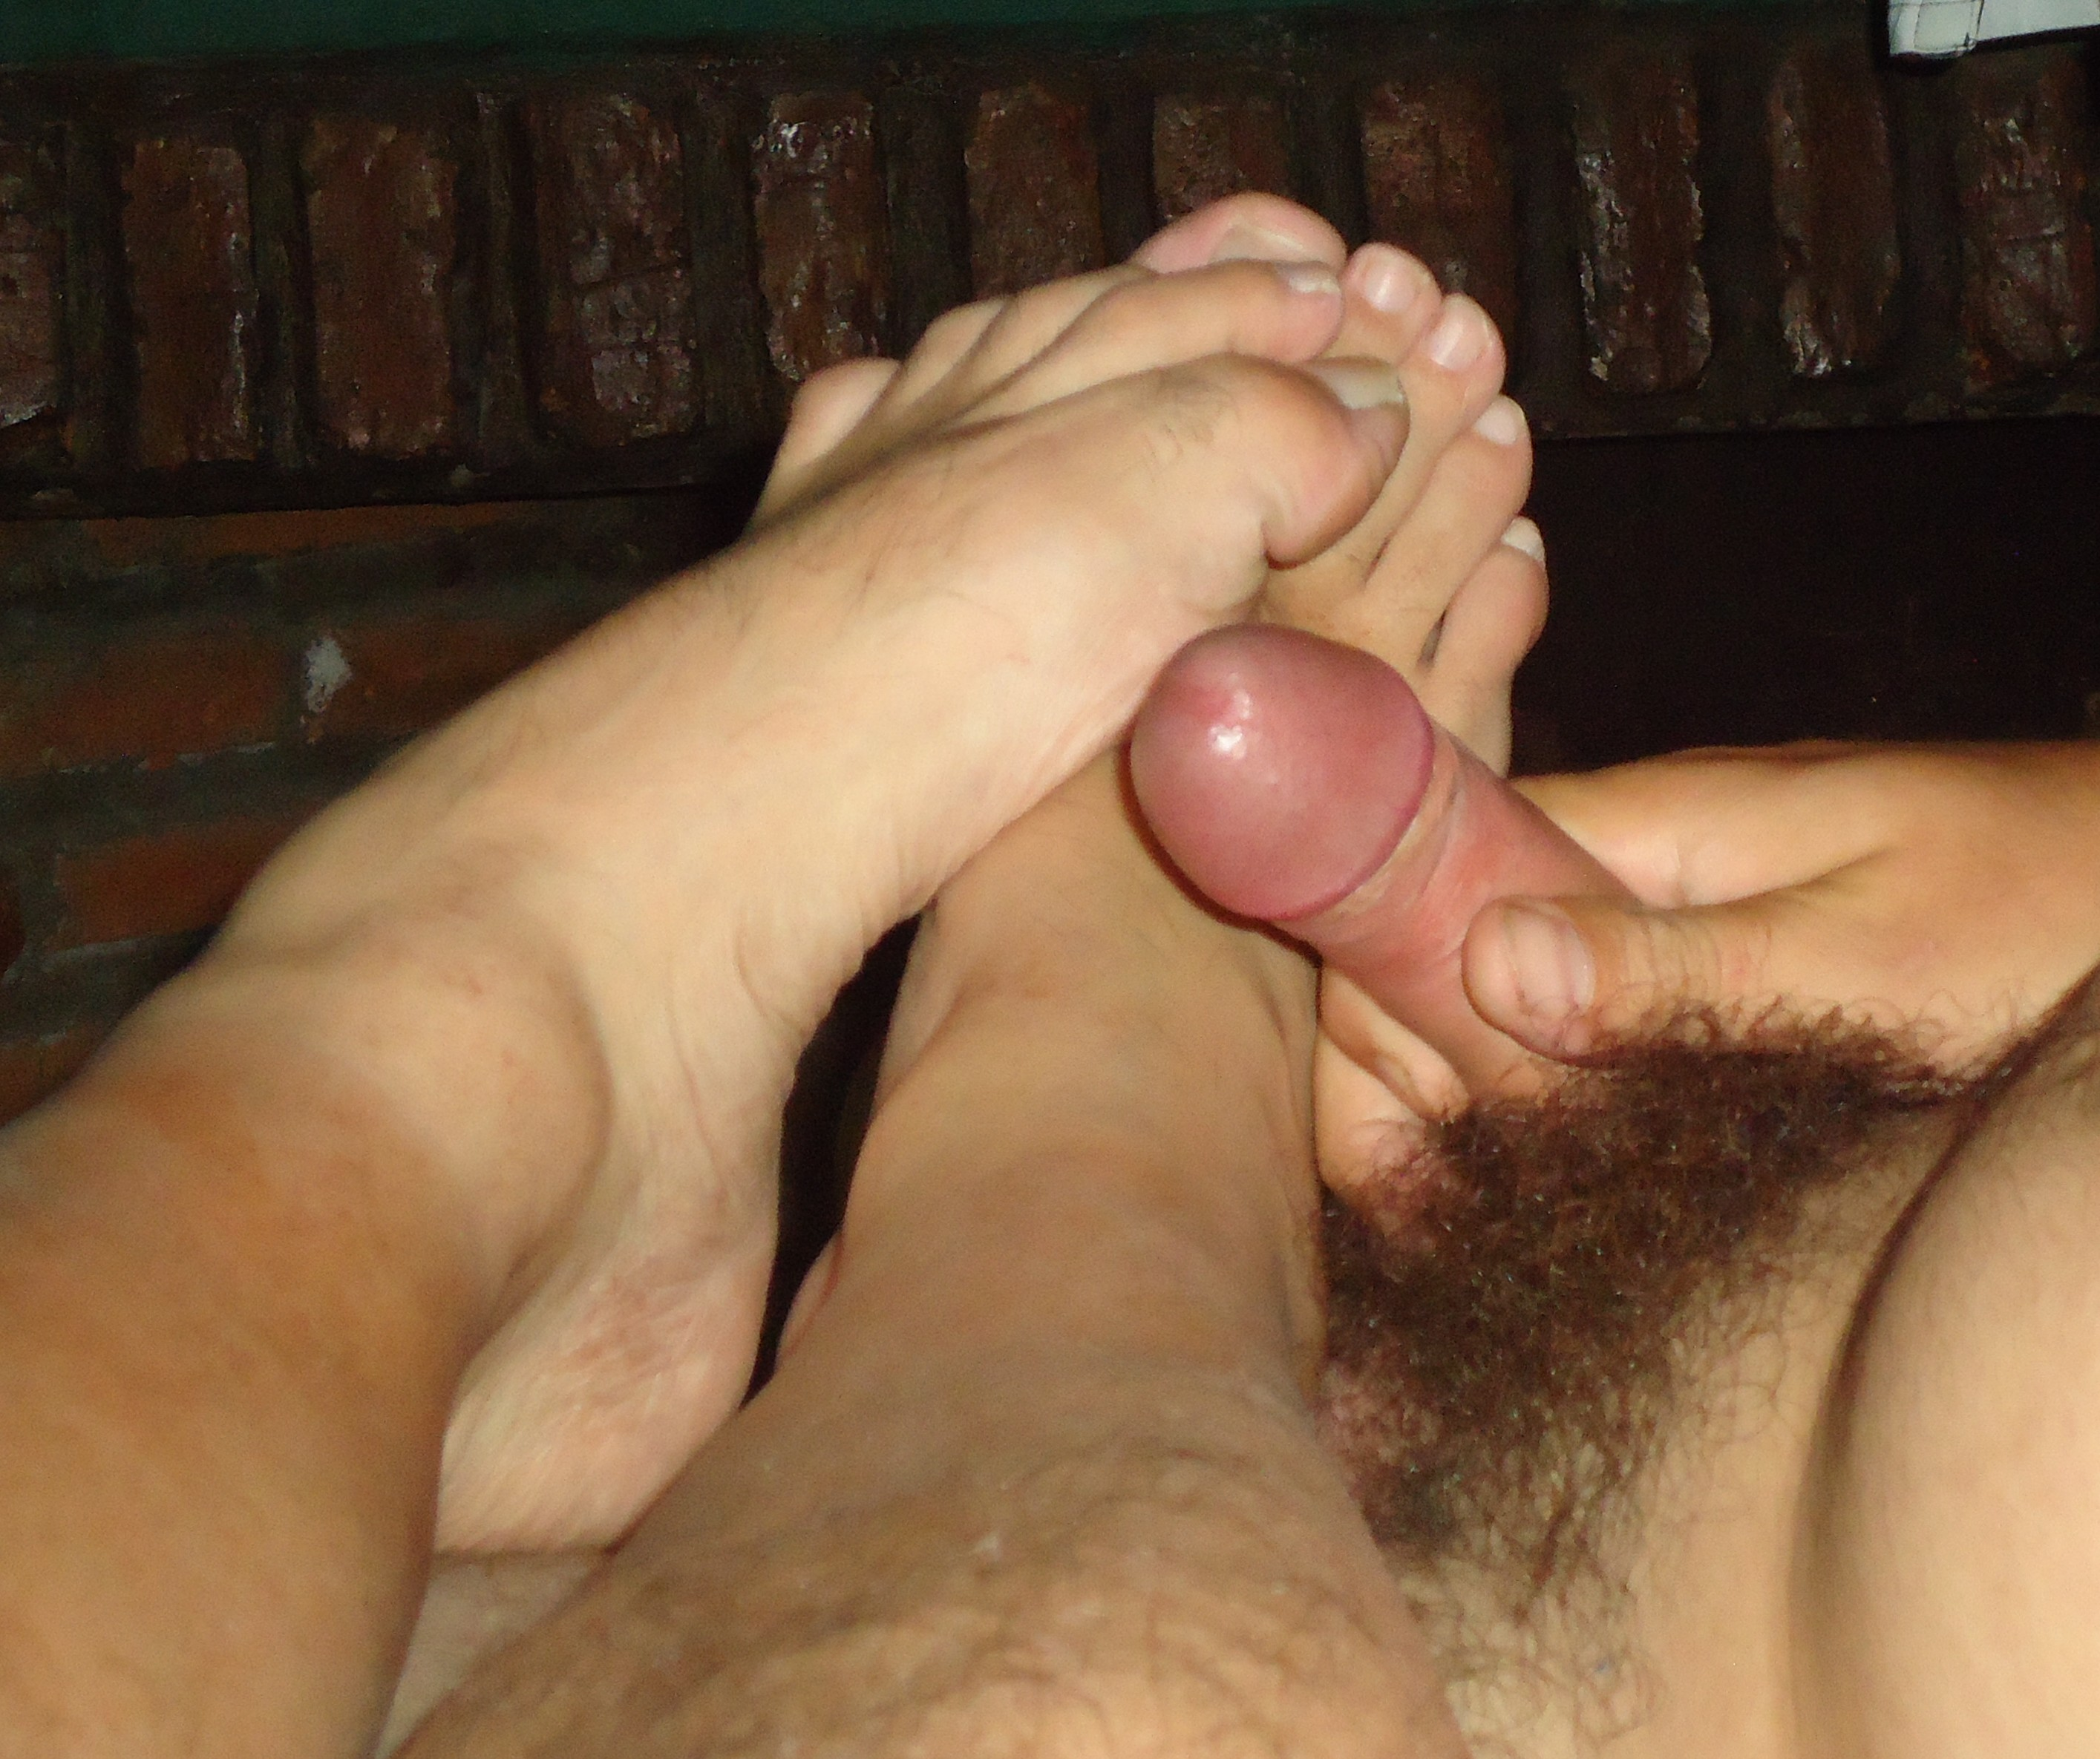 feet top gay escort